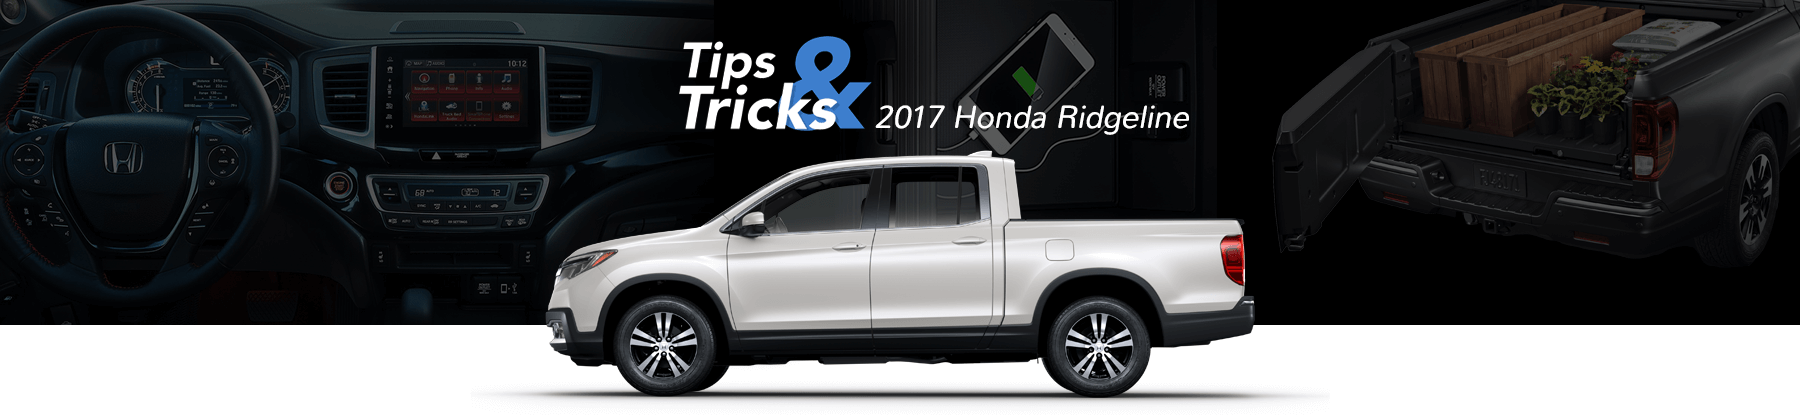 Honda Ridgeline Tips & Tricks Banner